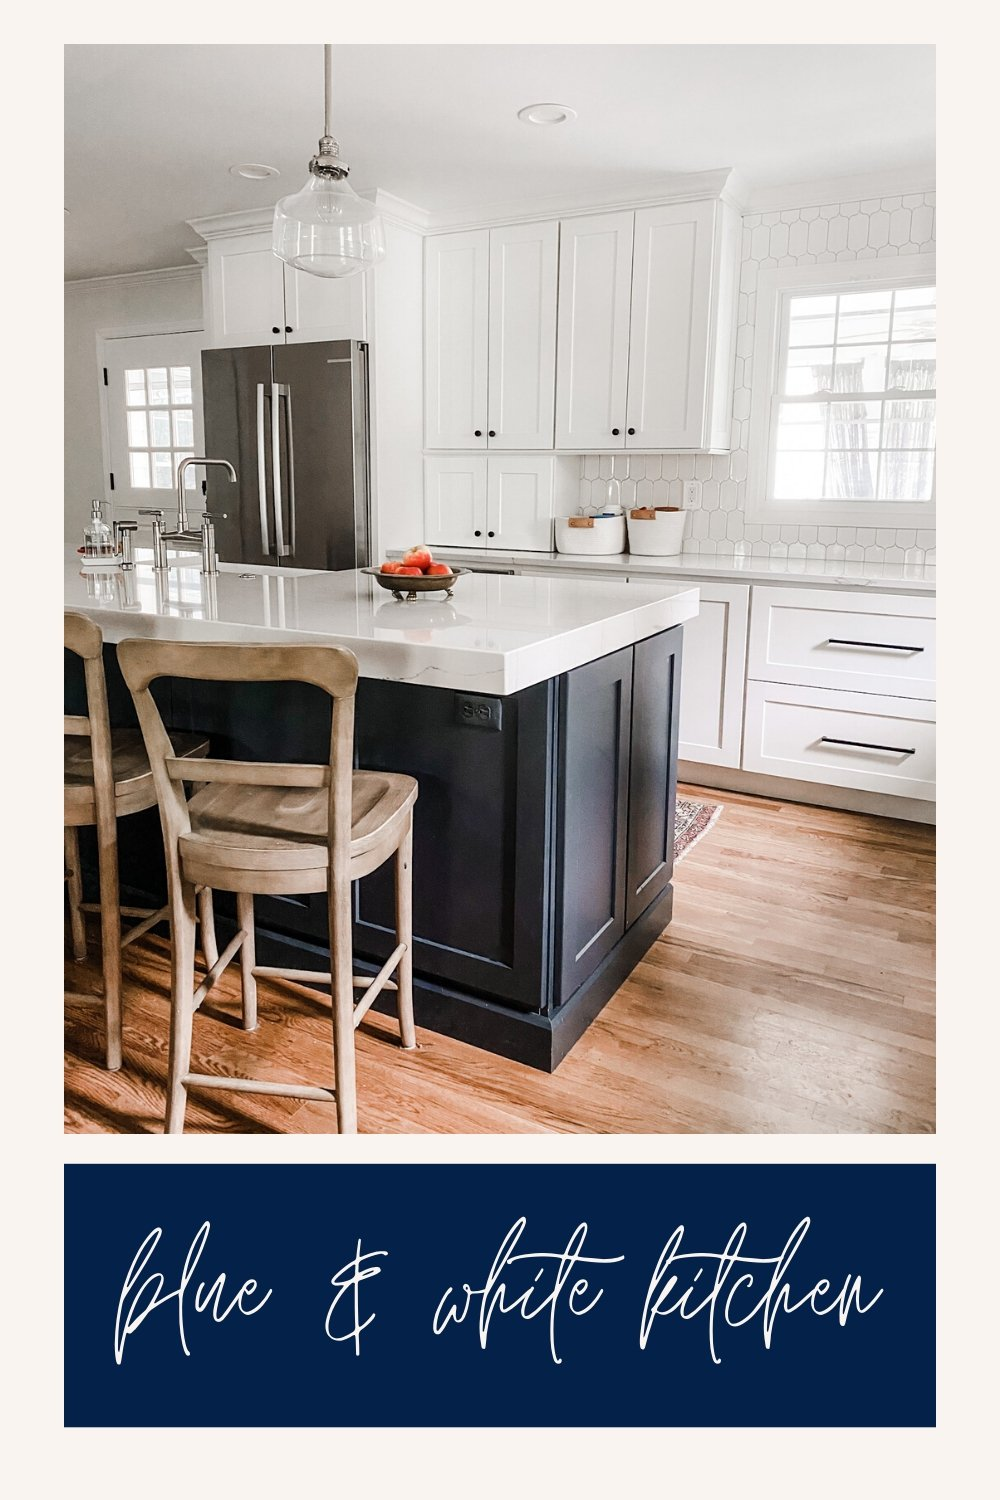 blue and white kitchen design with natural wood accents